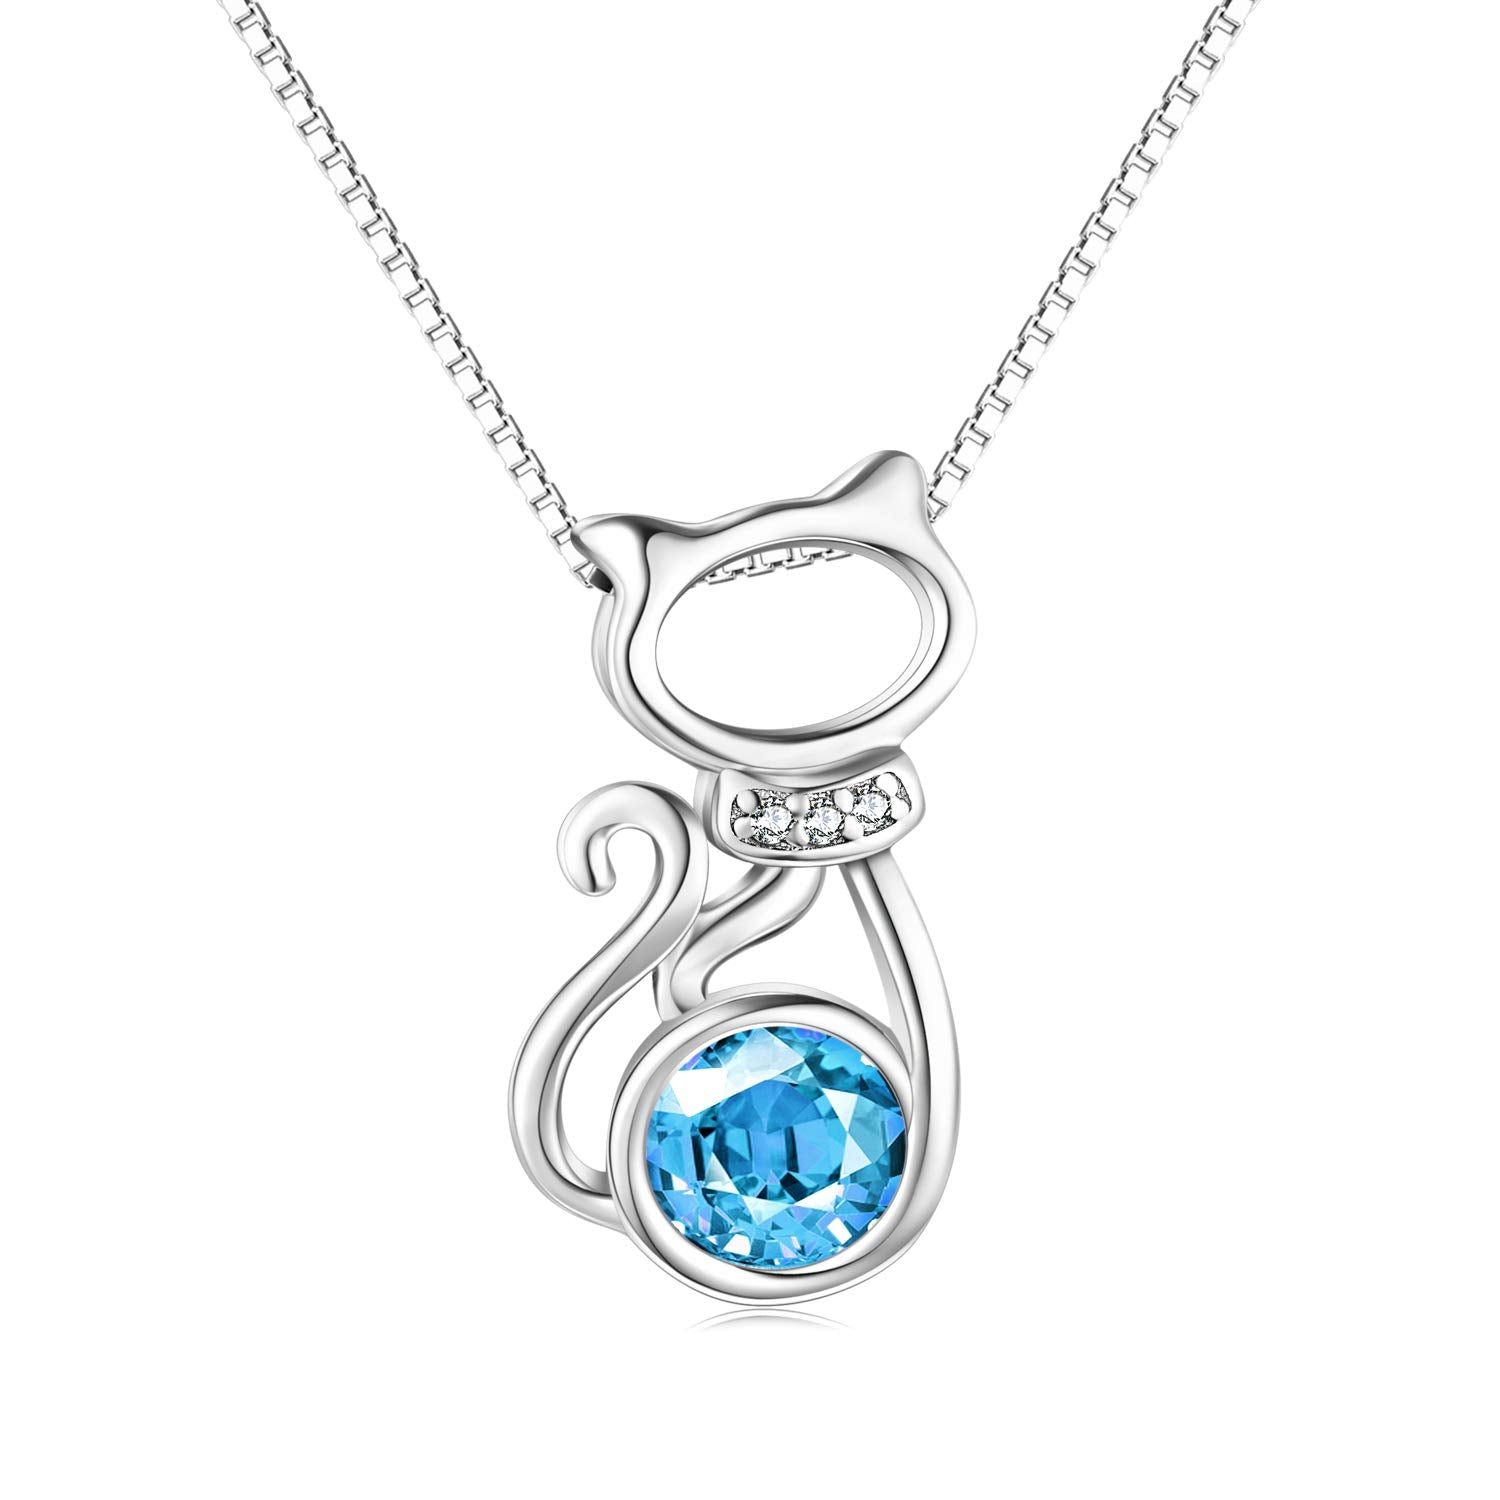 Sterling Silver Cat Pendant Necklaces with Swarovski Crystals Pink Jewelry Gifts for Women Girls